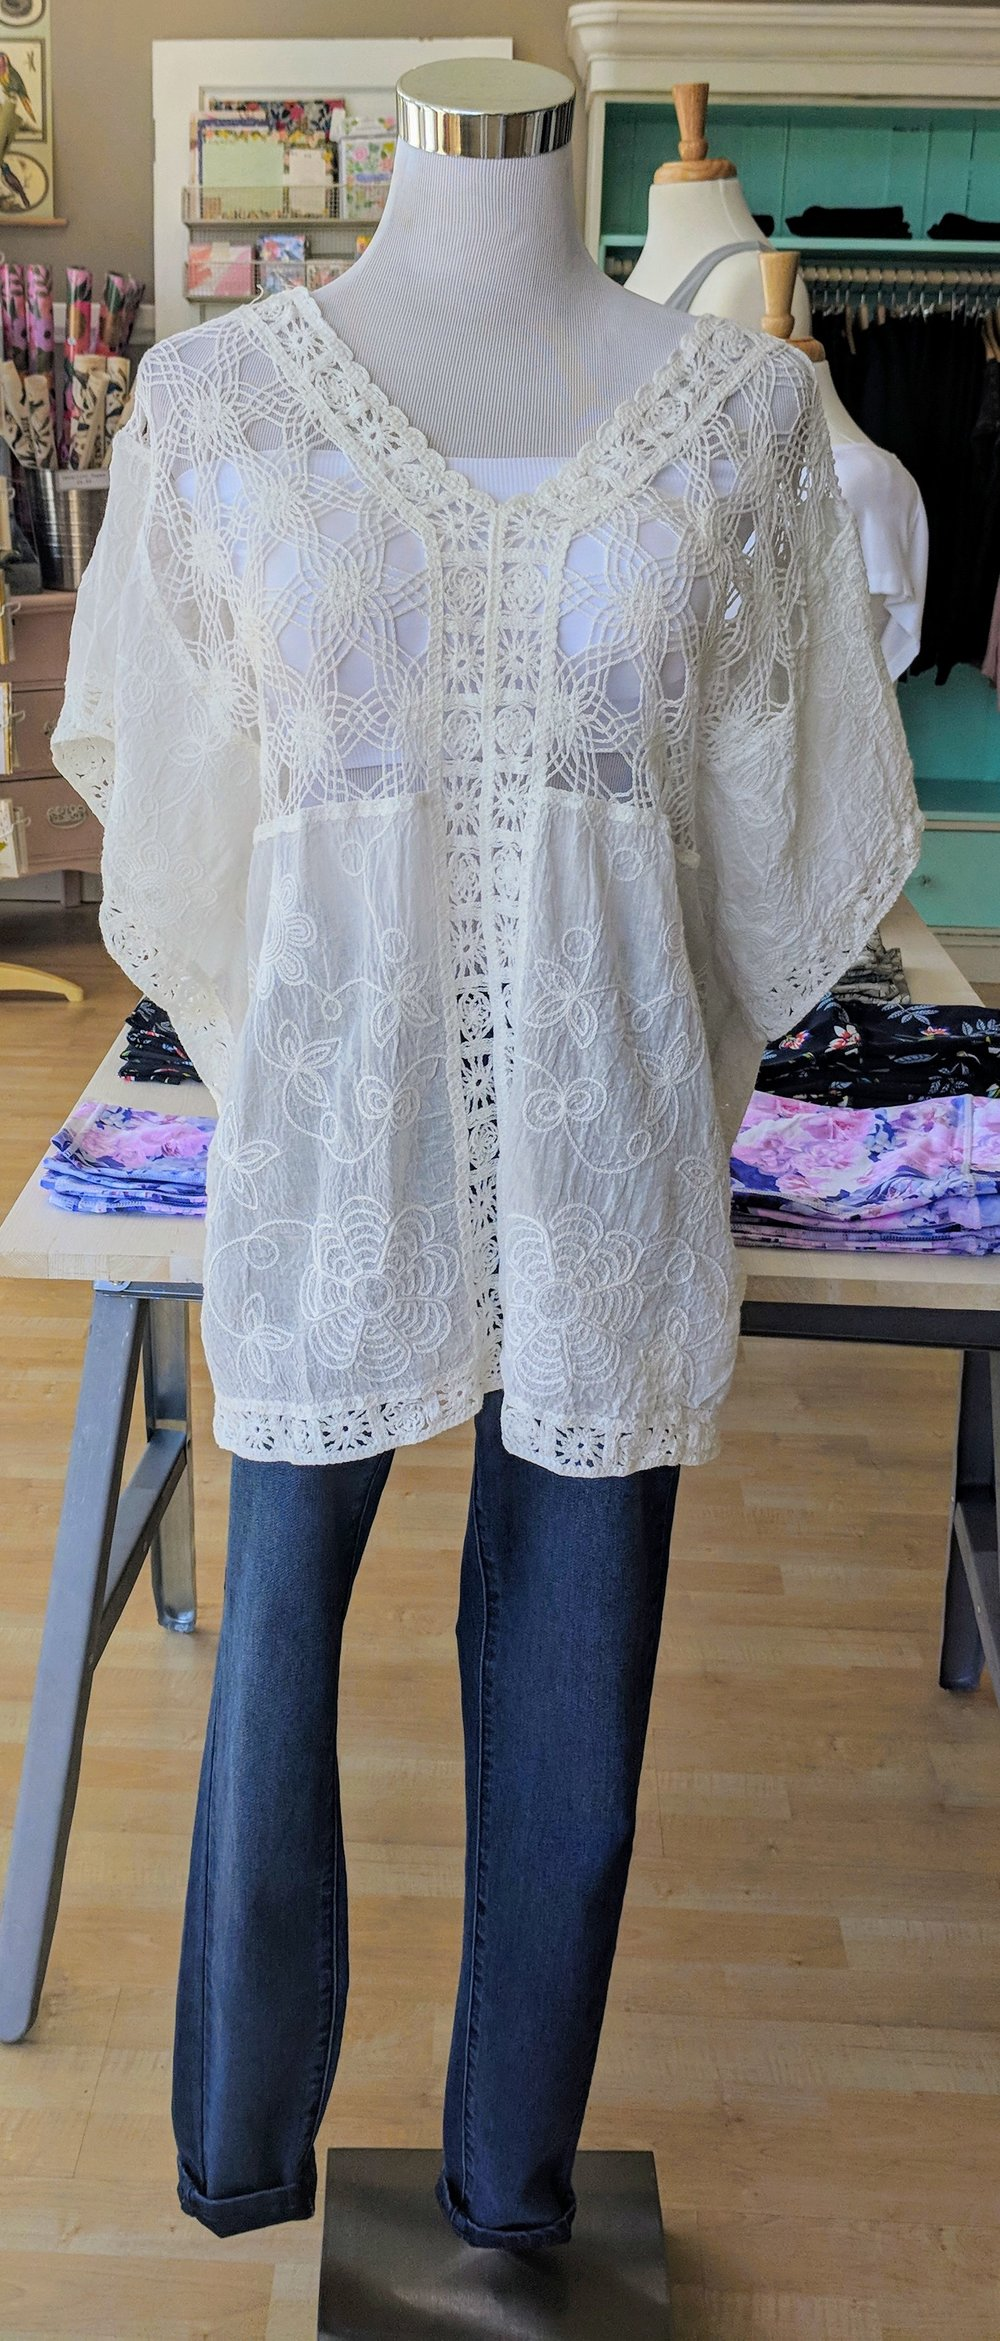 Embroidered Woven Poncho $35